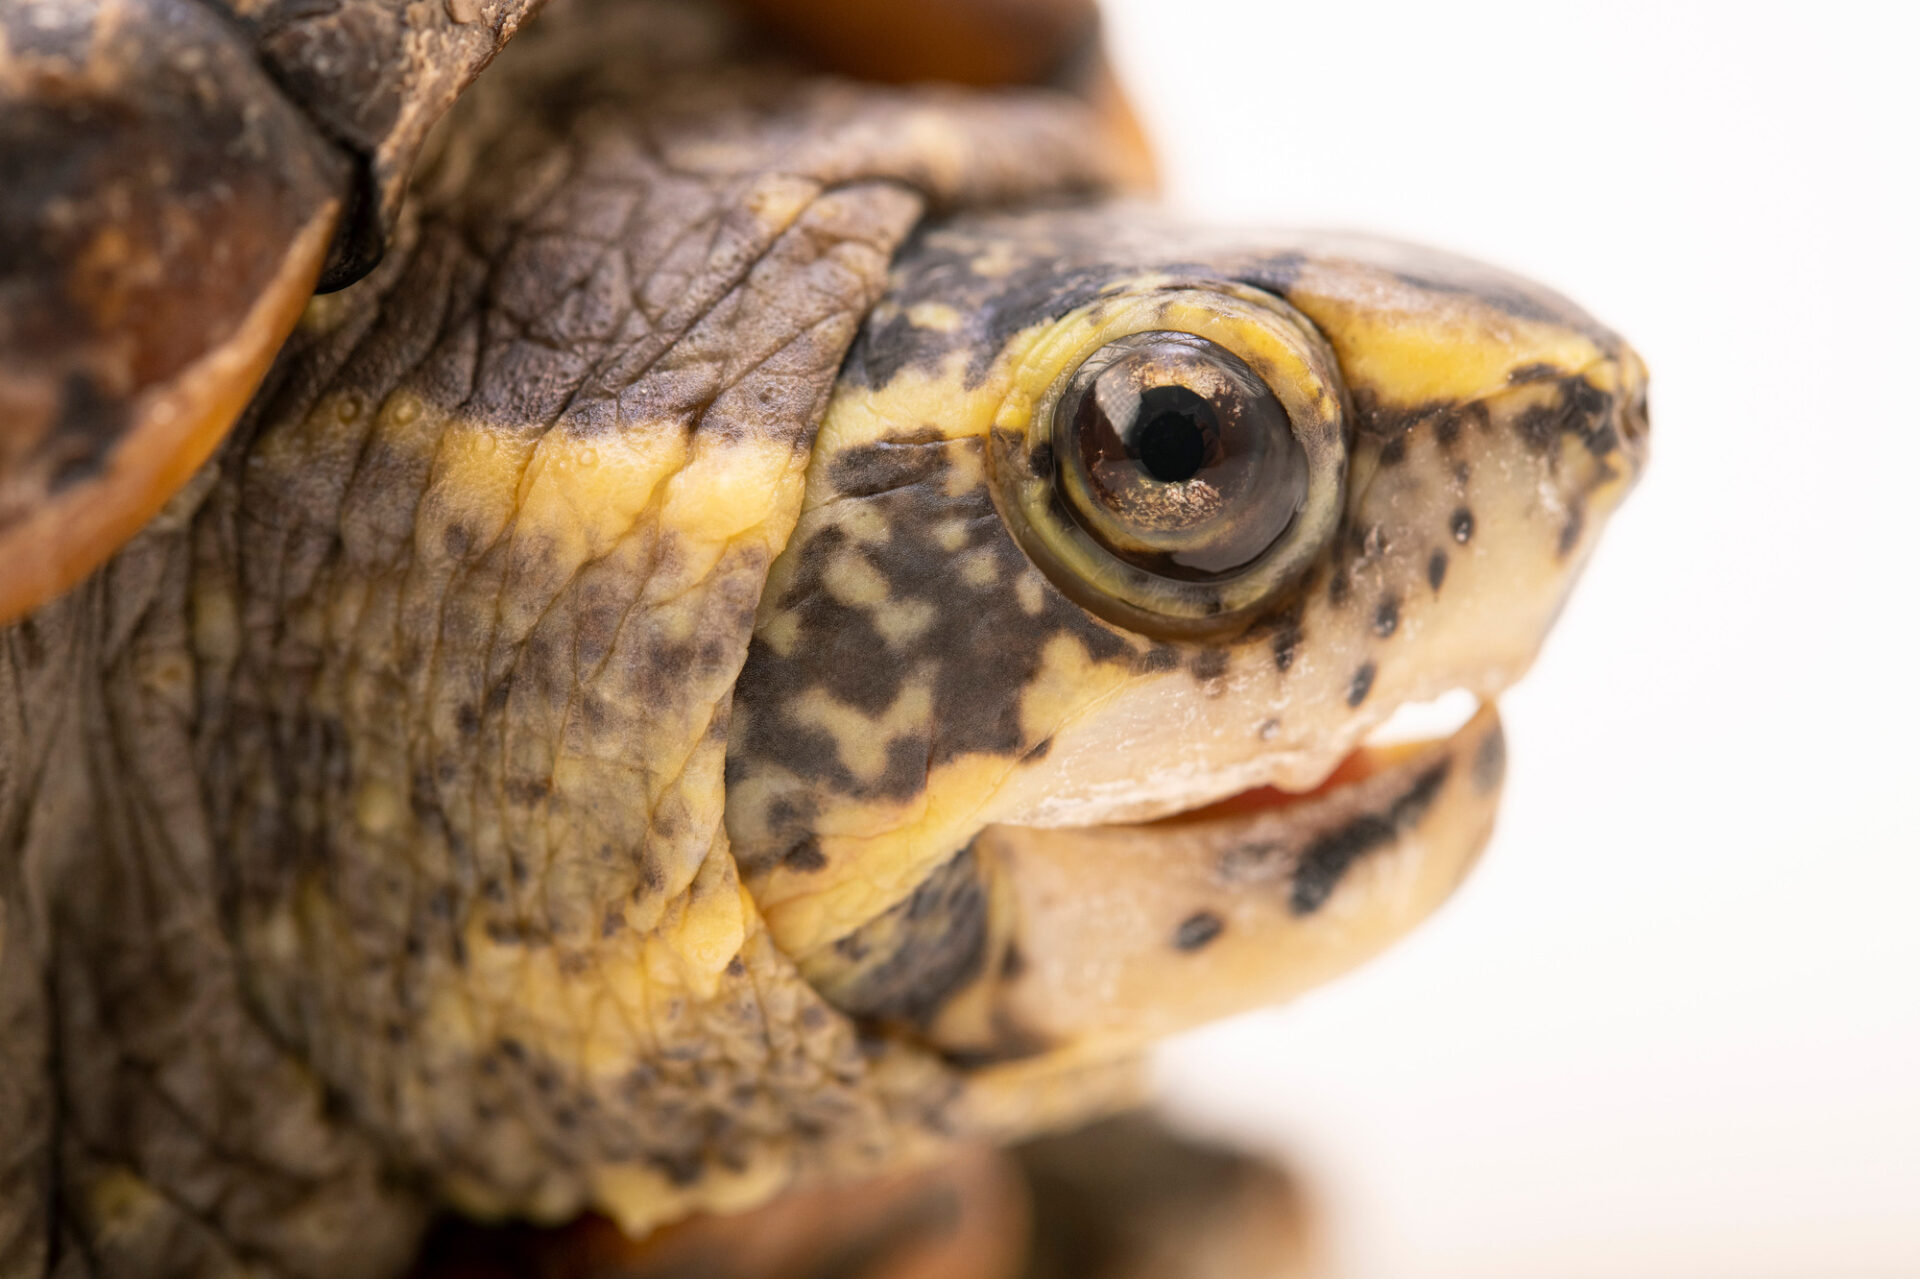 Photo: A striped mud turtle (Kinosternon baurii) named Madeline at the Brevard Zoo.